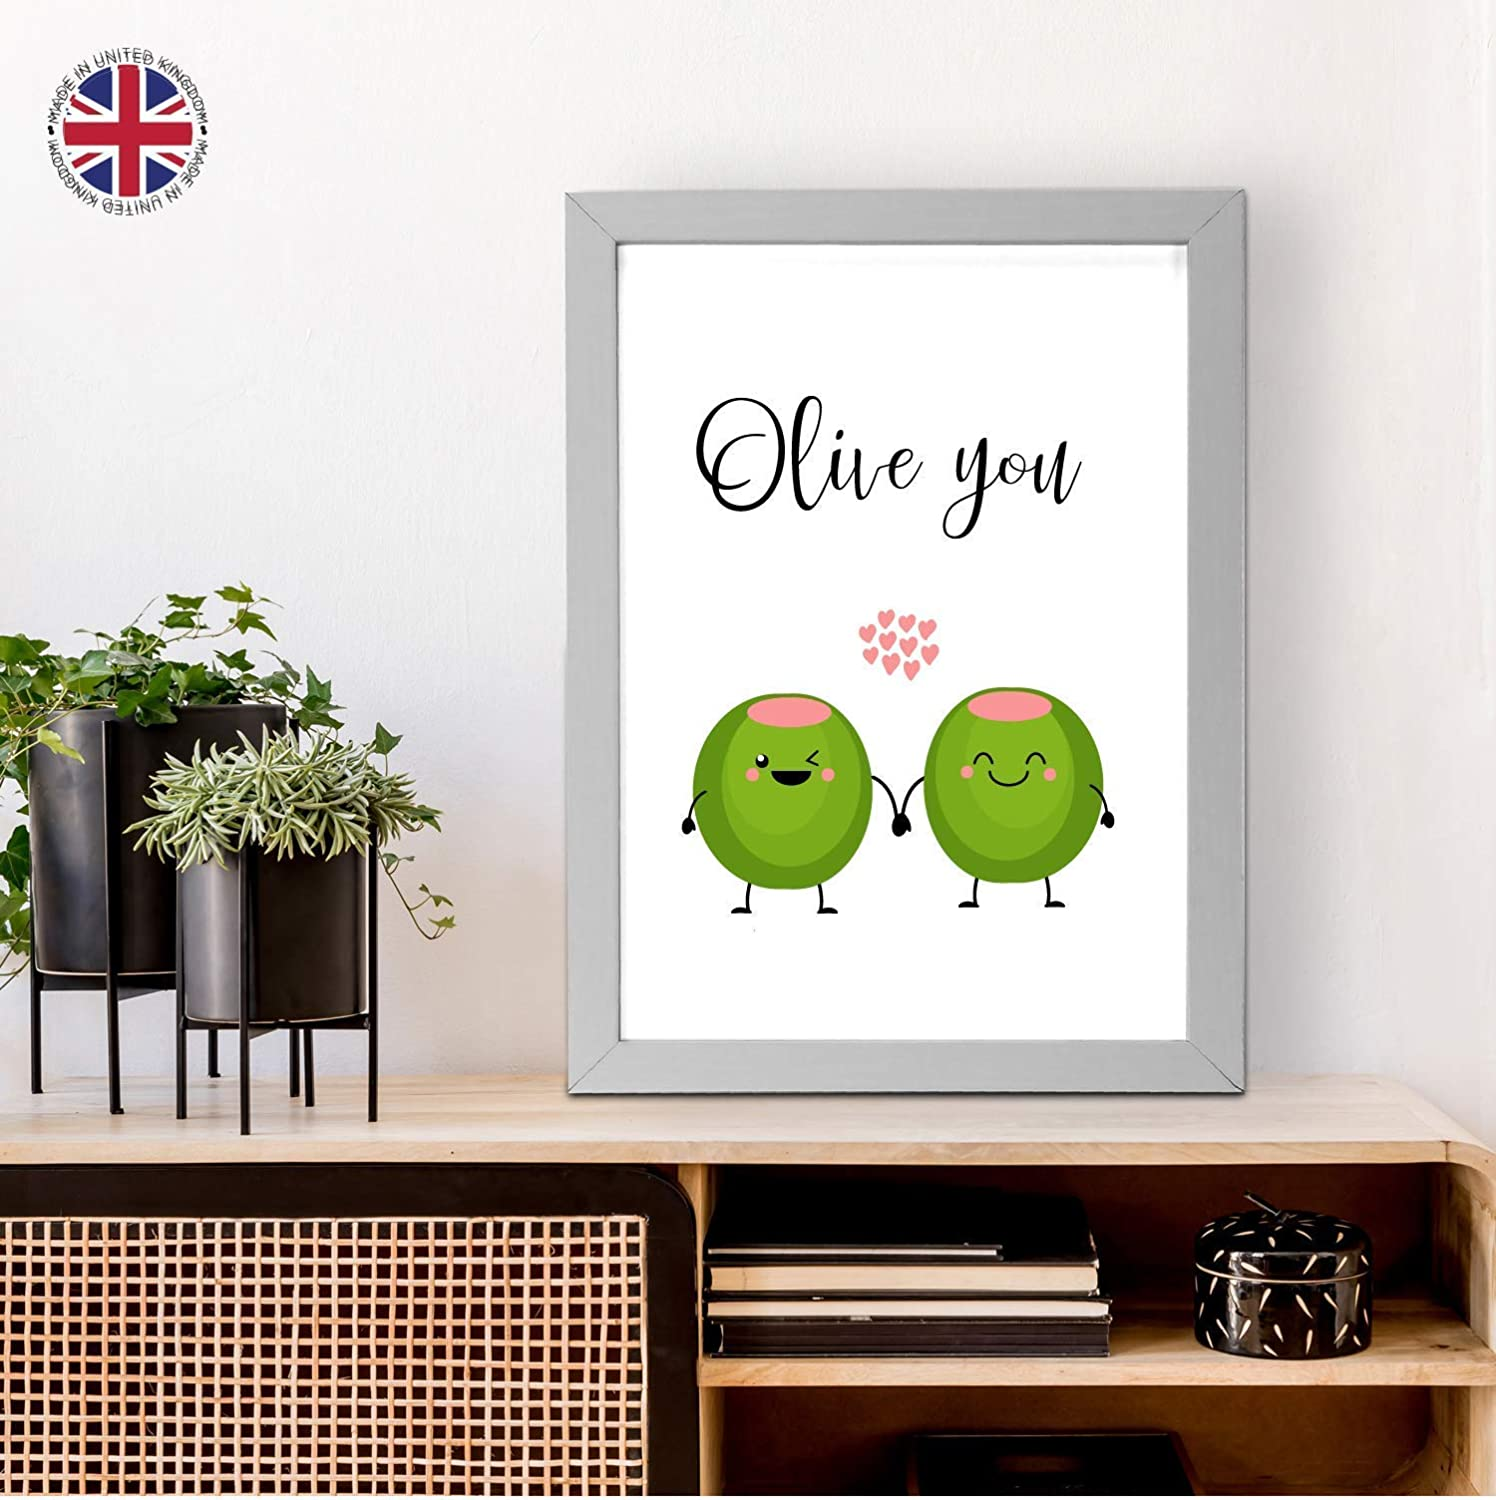 Fruit Funny Gift for a loved one A4 and A5 Wooden Frames Available Made in UK CUSTOMISED Cute A3 Olive You Quality Print Home Decor Happy